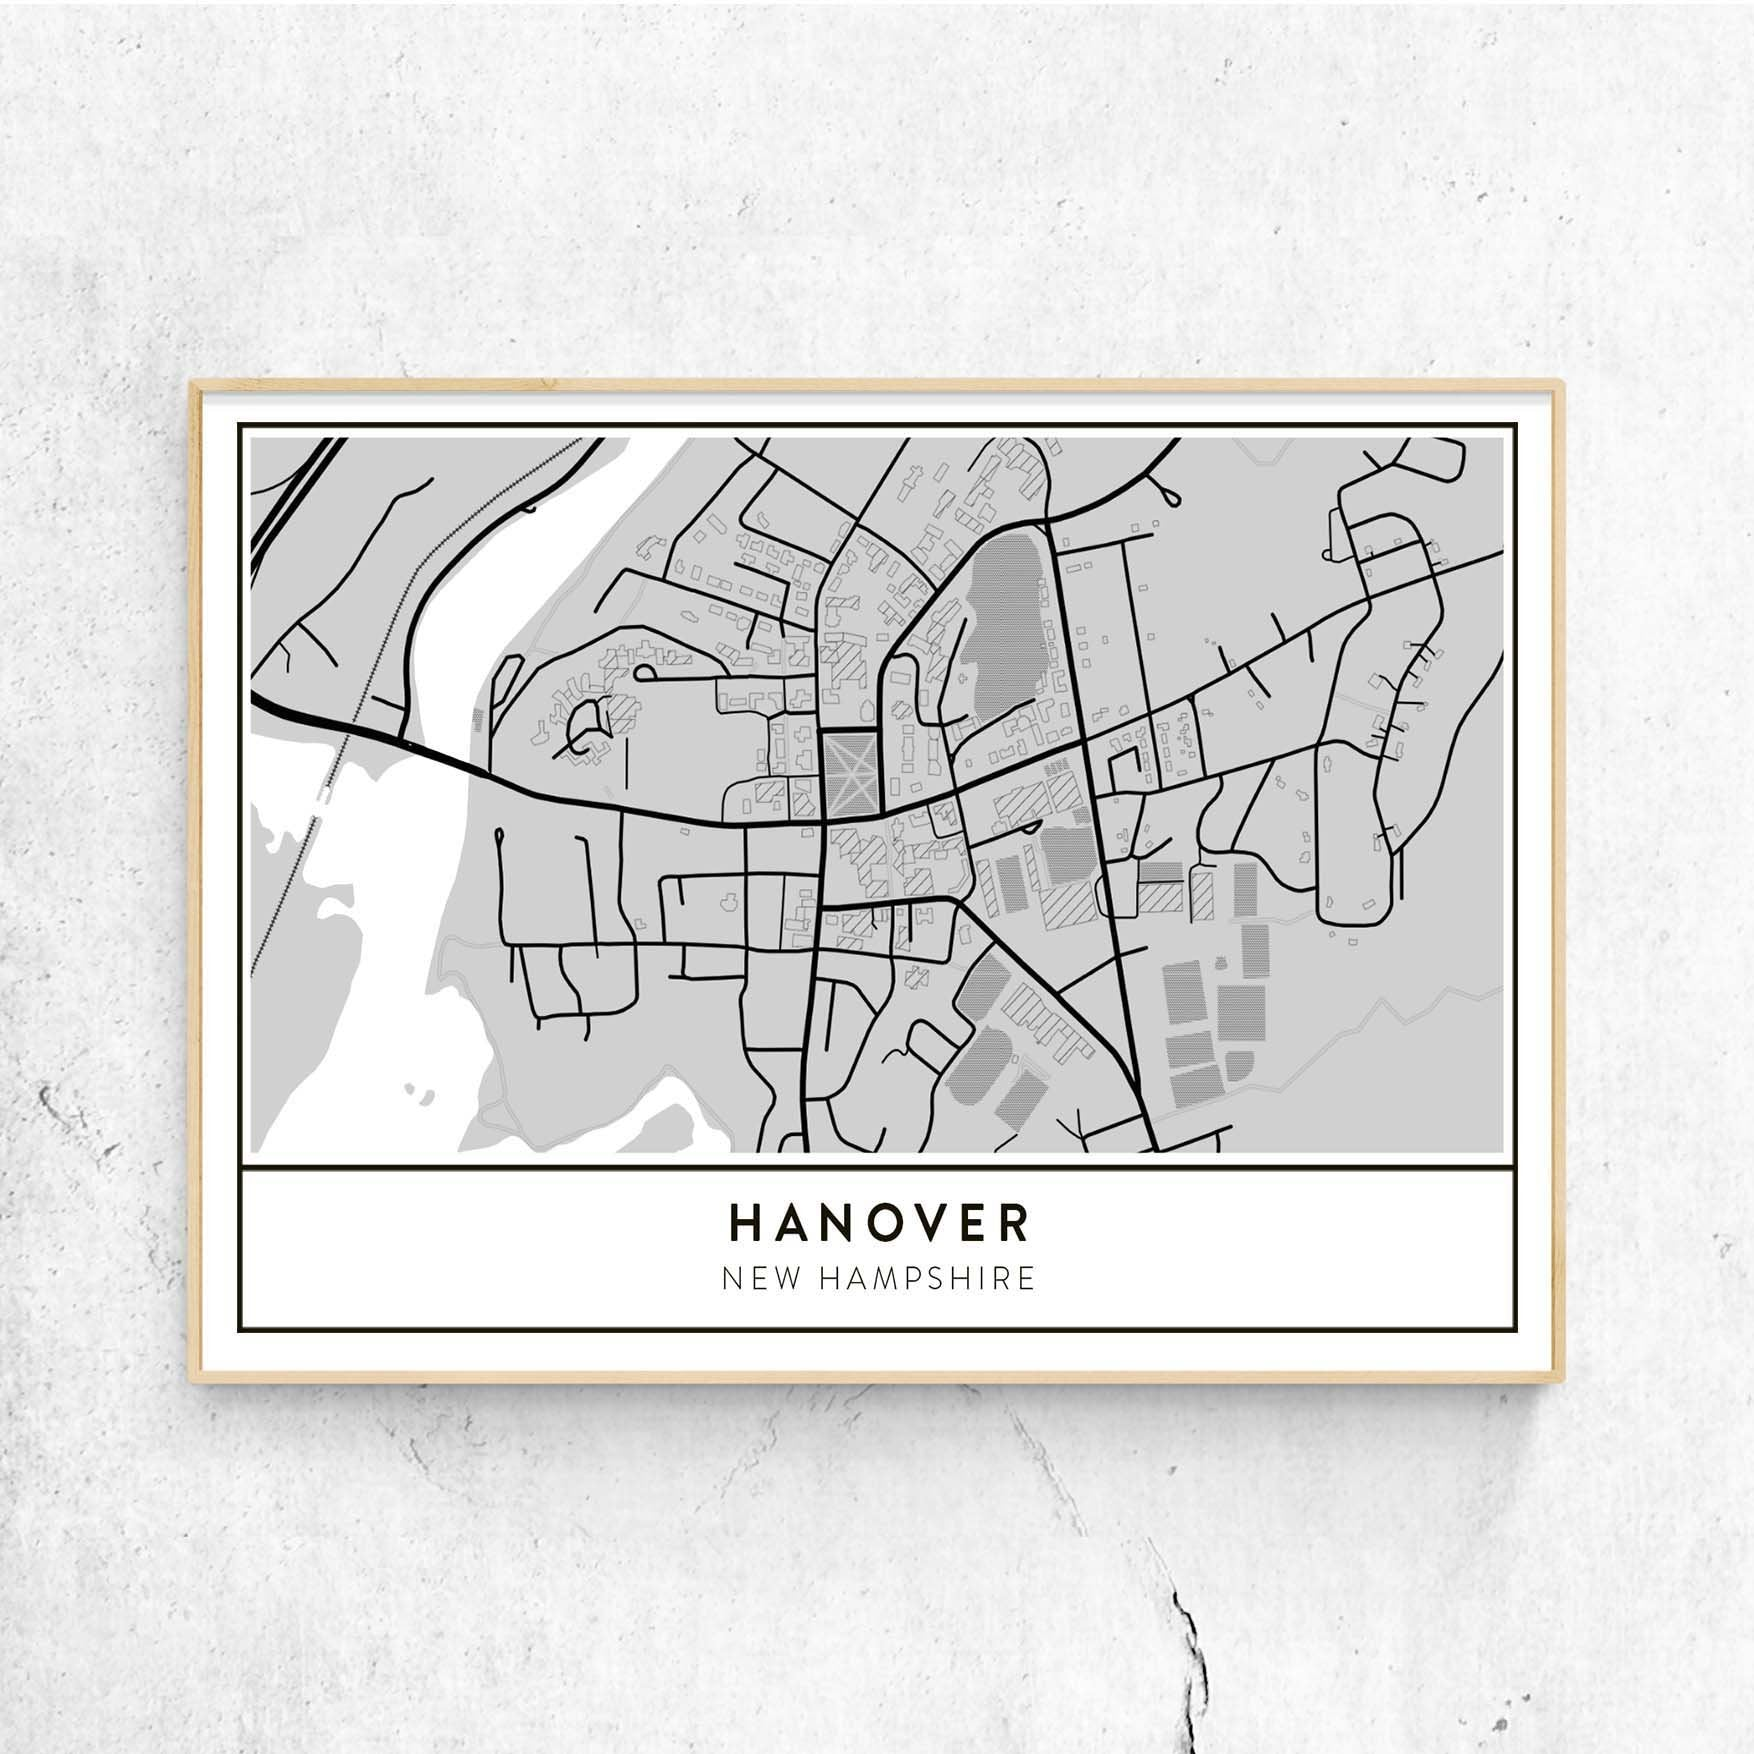 Golden Gate Design Co. - Custom Map Art Prints of Your Favorite City ...